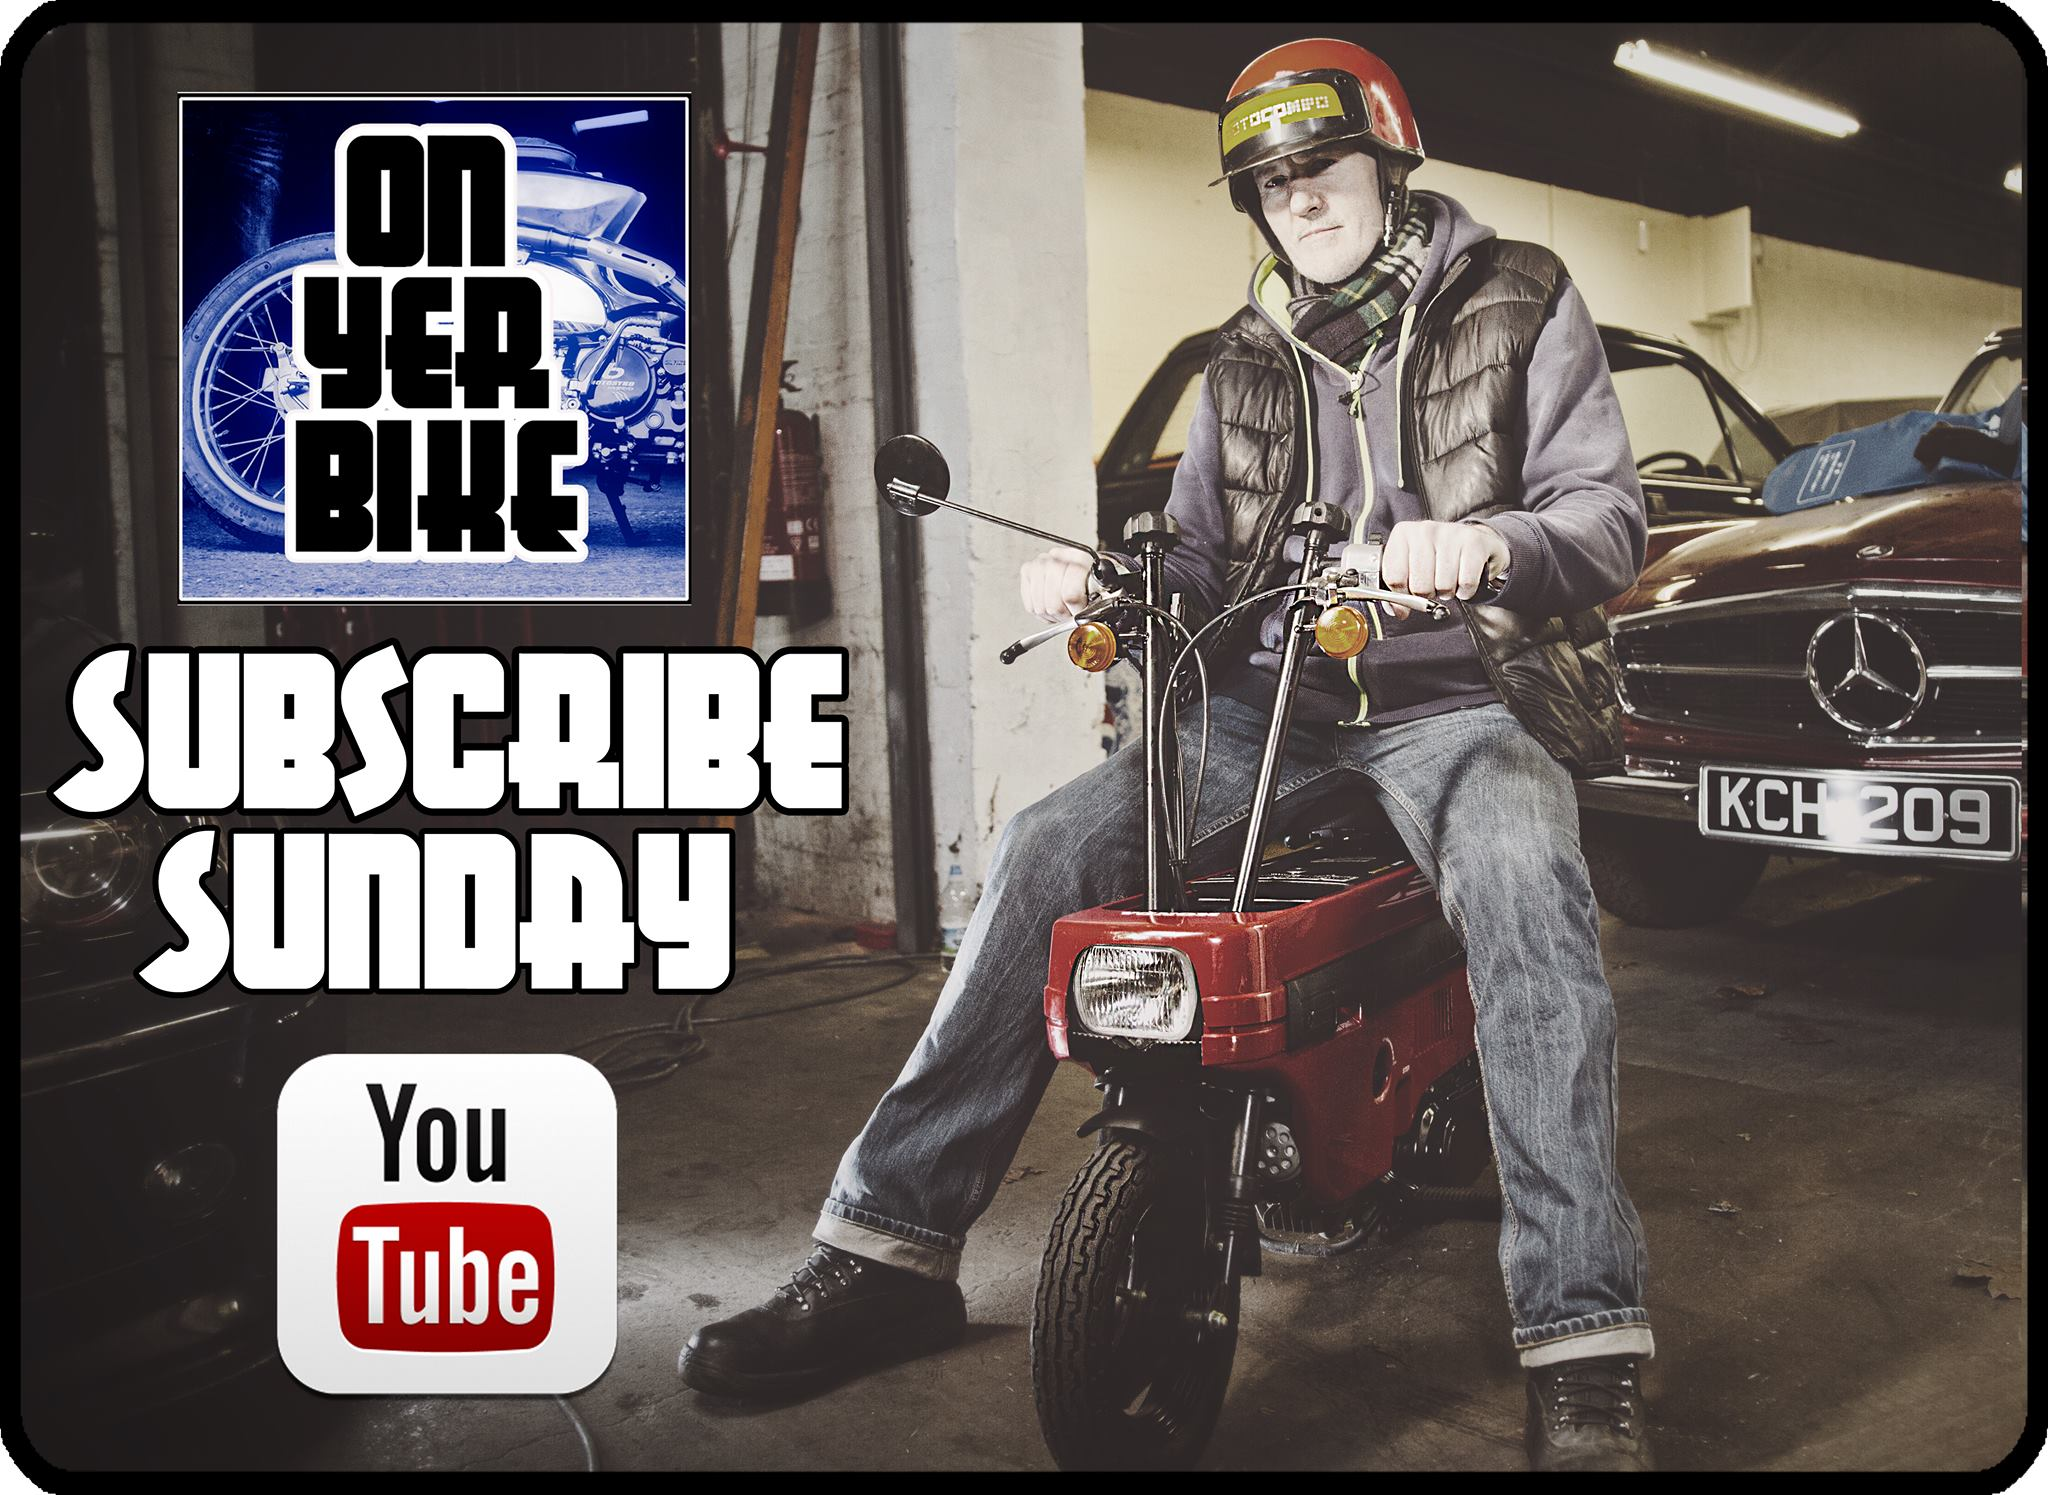 On Yer Bike Honda Minibikes Youtube Channel - mini4temps.fr